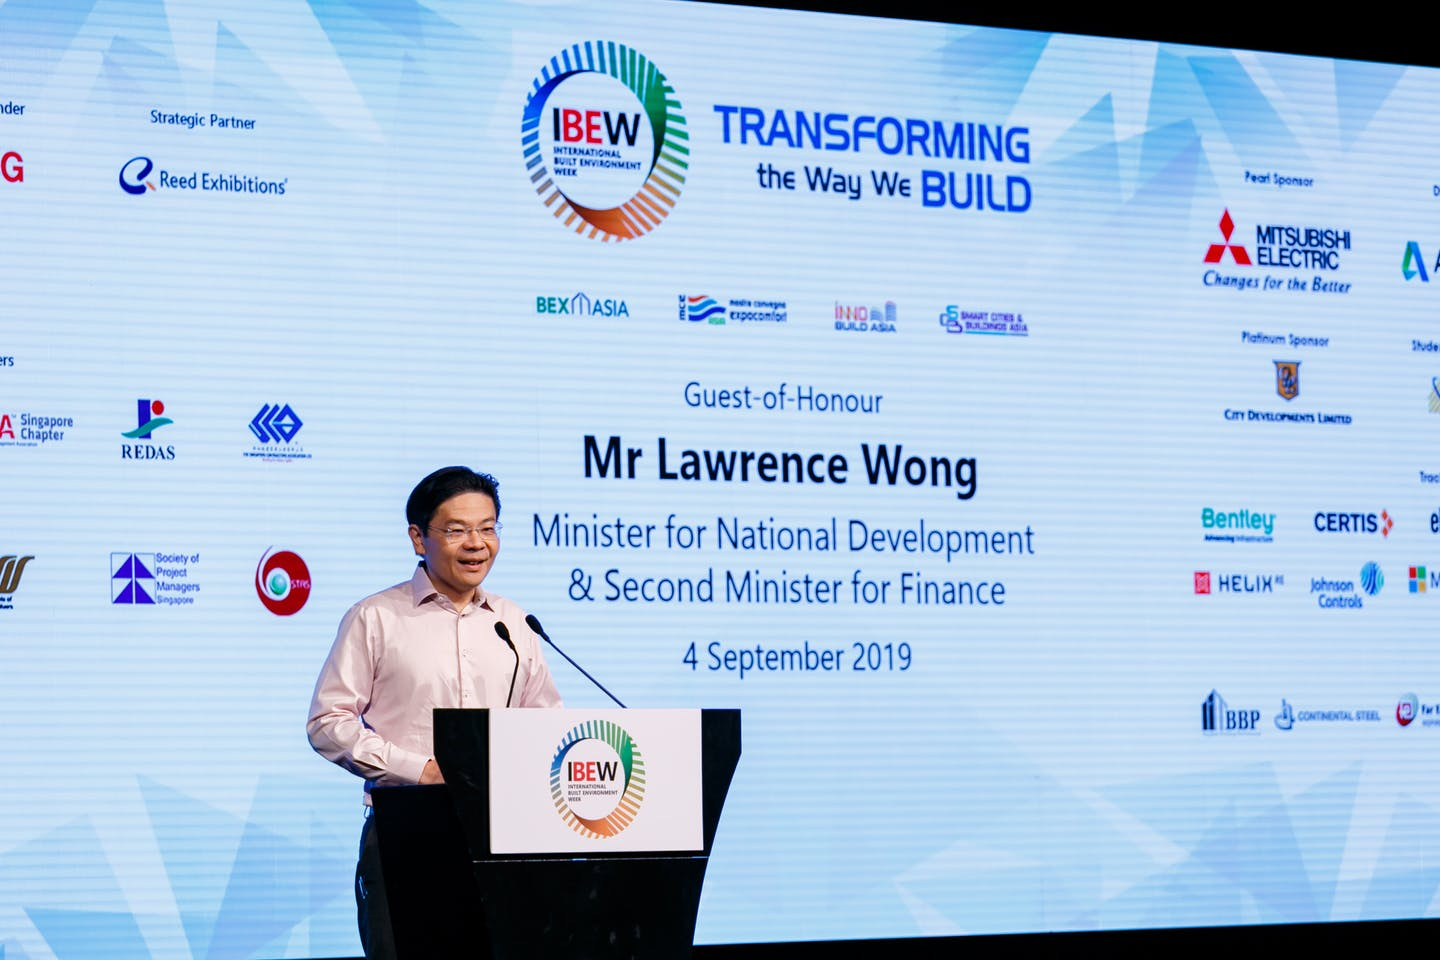 Minister for National Development, Lawrence Wong, opens the inaugural International Built Environment Week in Singapore in September 2019.